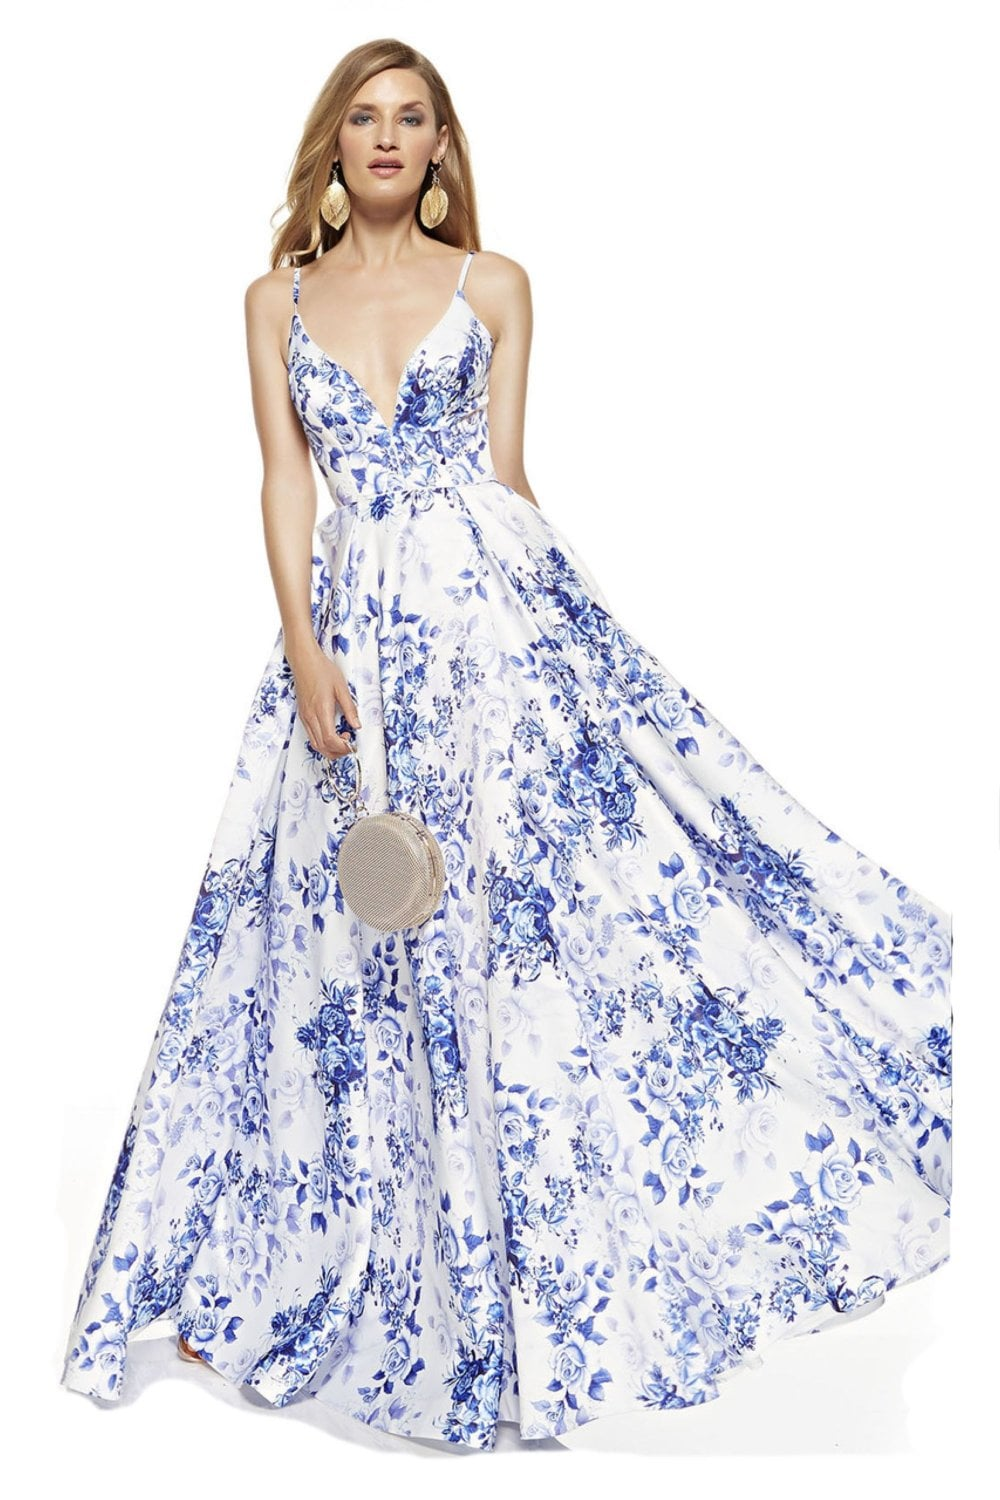 professional sale pretty cheap outlet boutique Alyce Paris diamond white & royal blue floral print formal prom dress